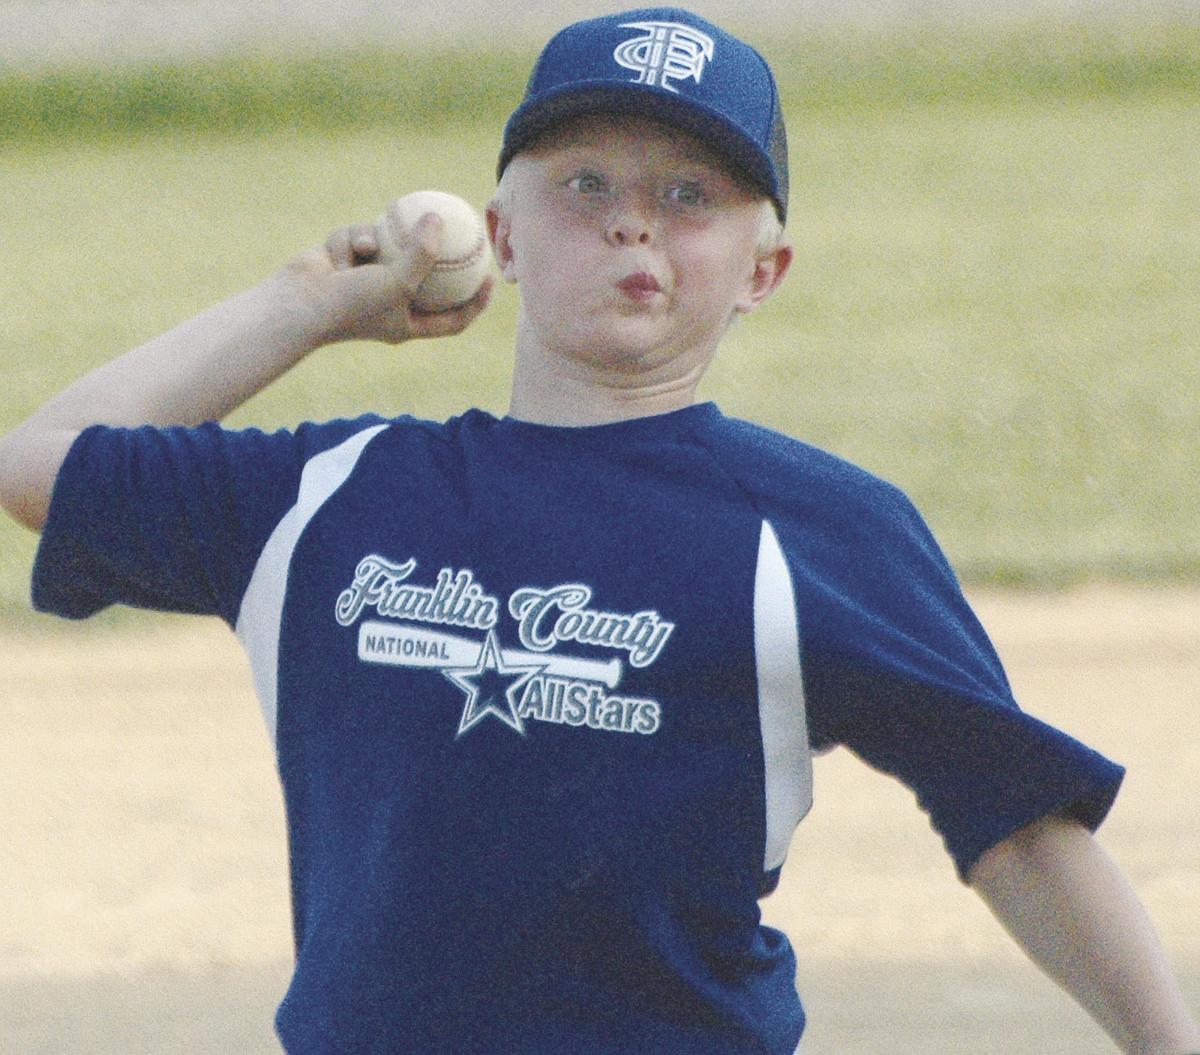 FRANKLIN COUNTY ALL-STARS IN ACTION